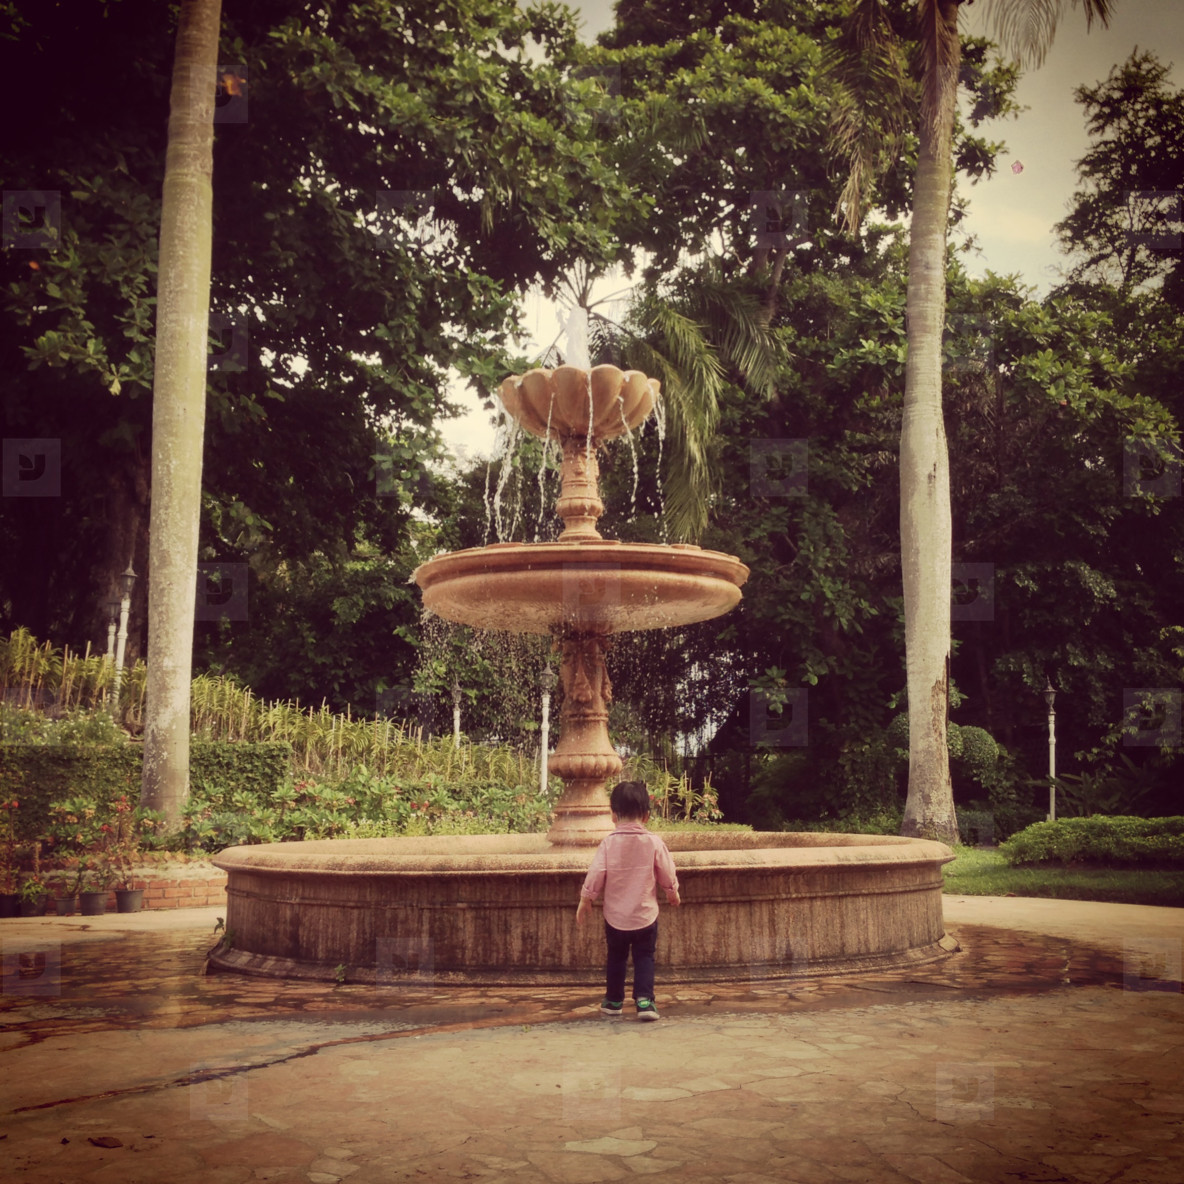 Child at Fountain